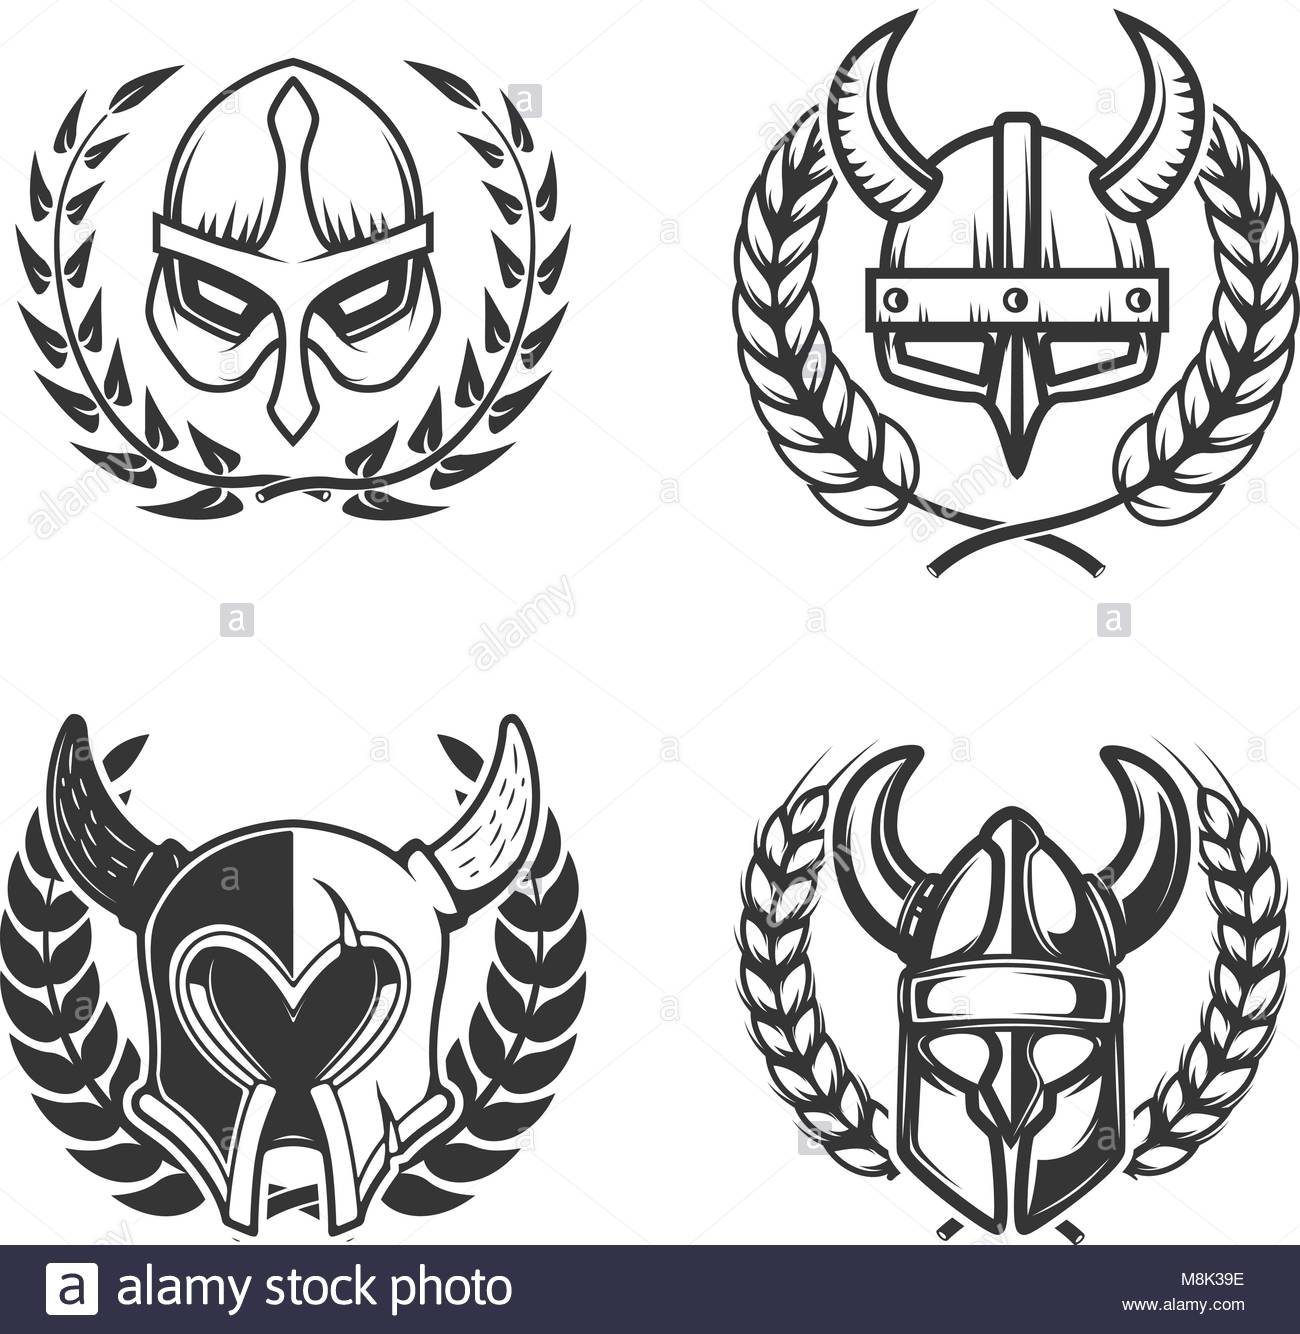 1300x1334 Medieval Helmets Stock Photos Amp Medieval Helmets Stock Images